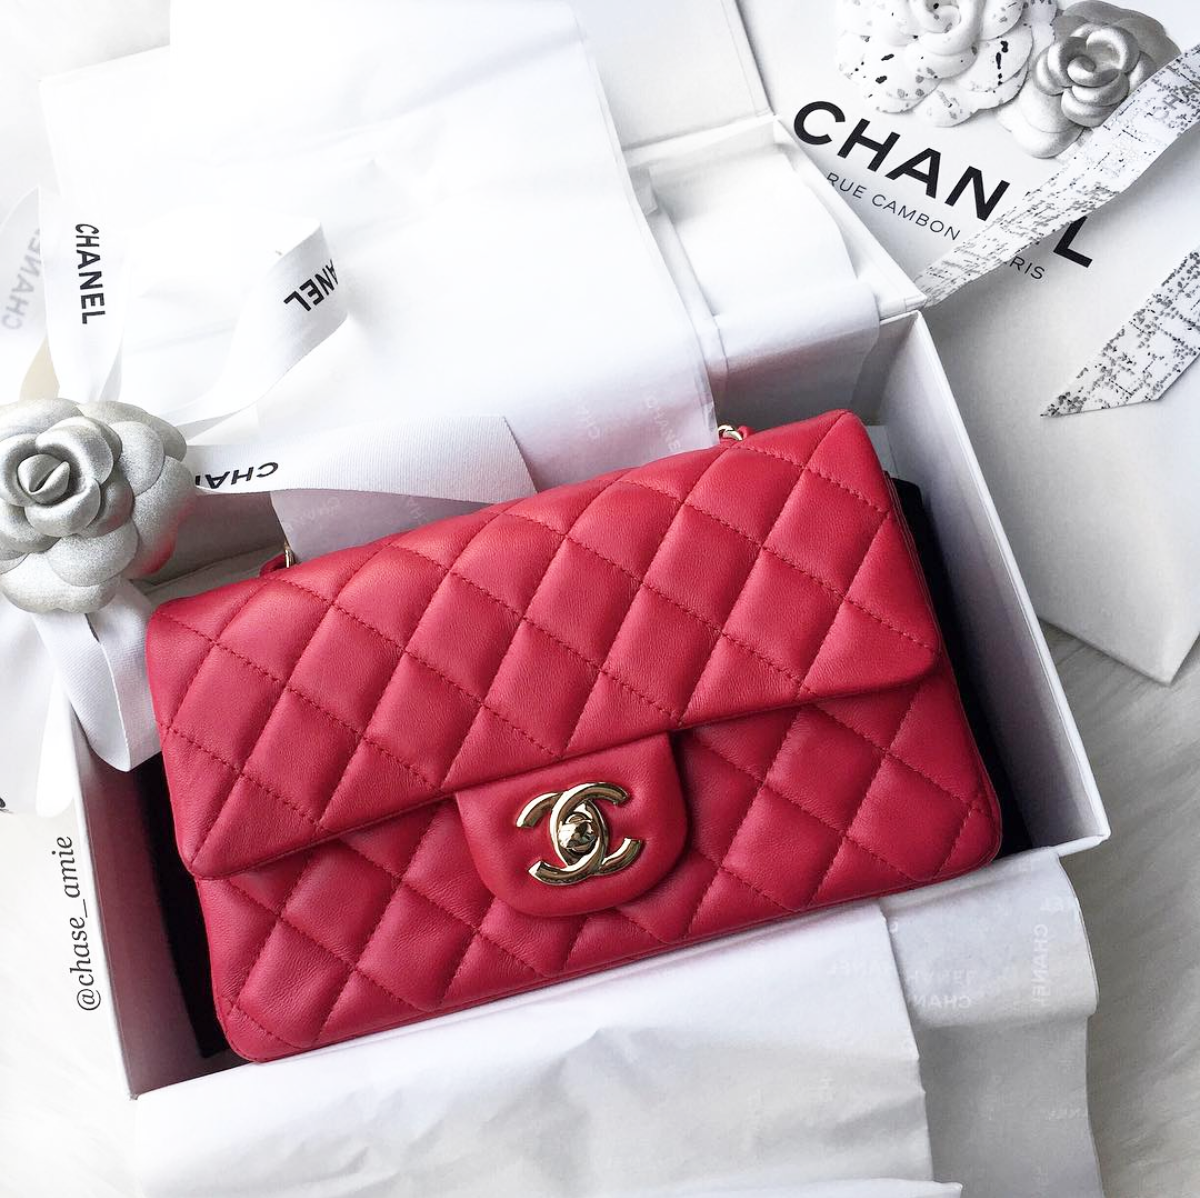 0d6e1229669c What Steps Should I Take To Score a Chanel Mini?